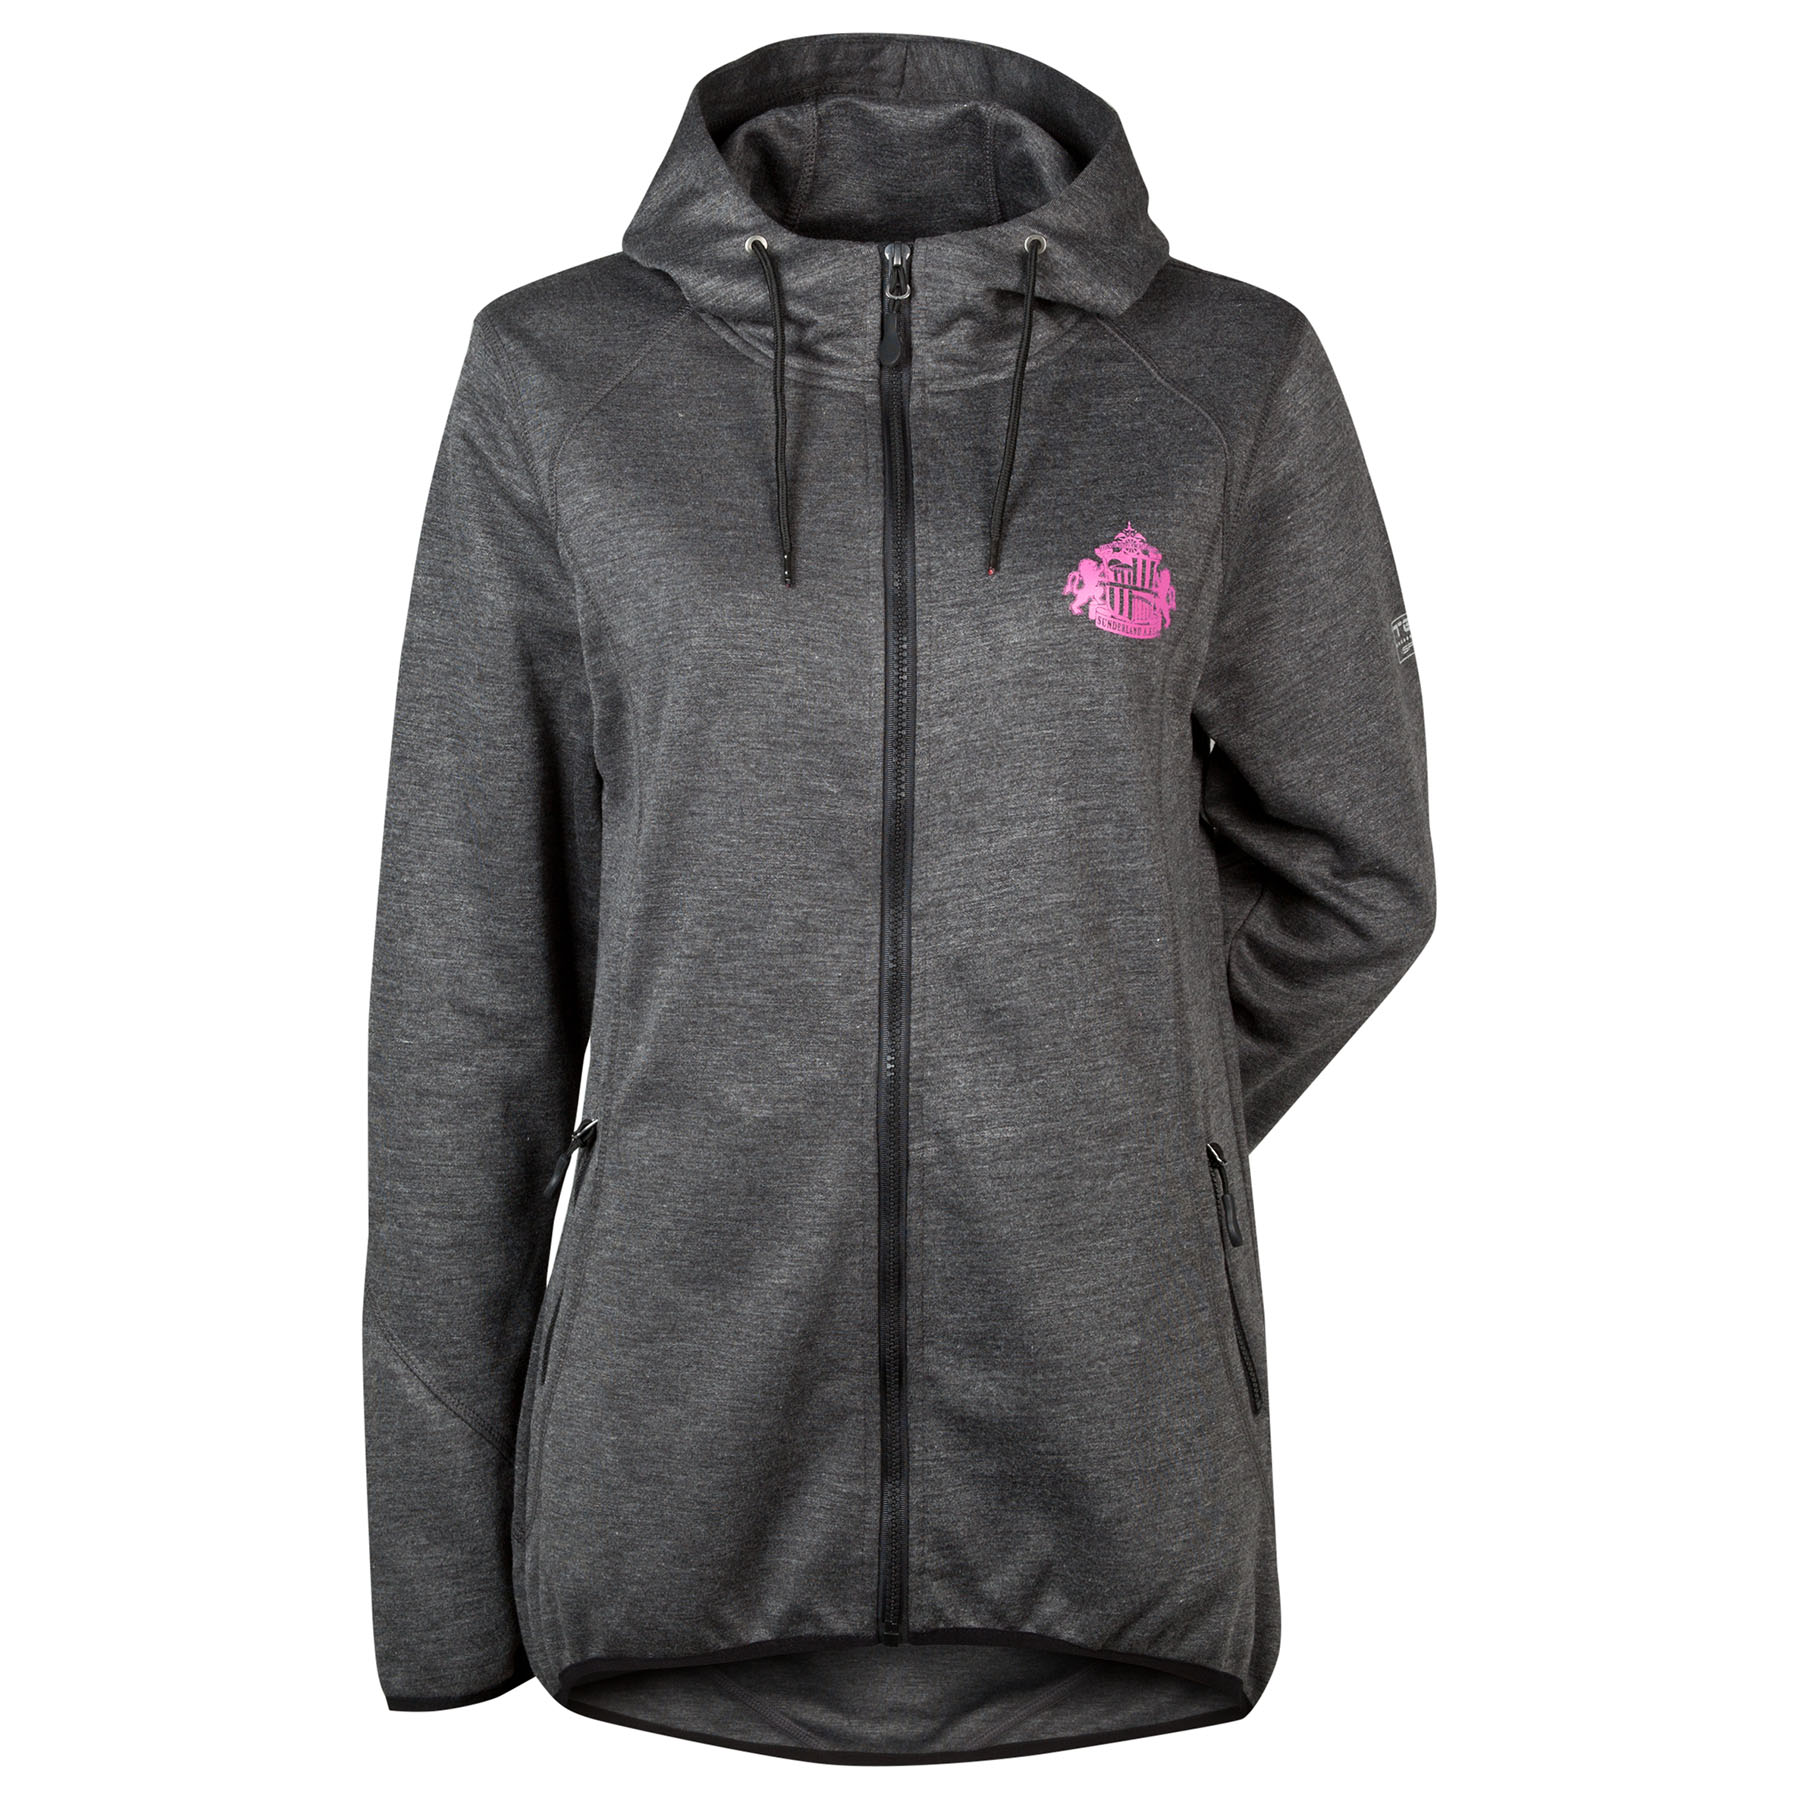 Sunderland Performance Tech hoodie - Charcoal Marl - Womens